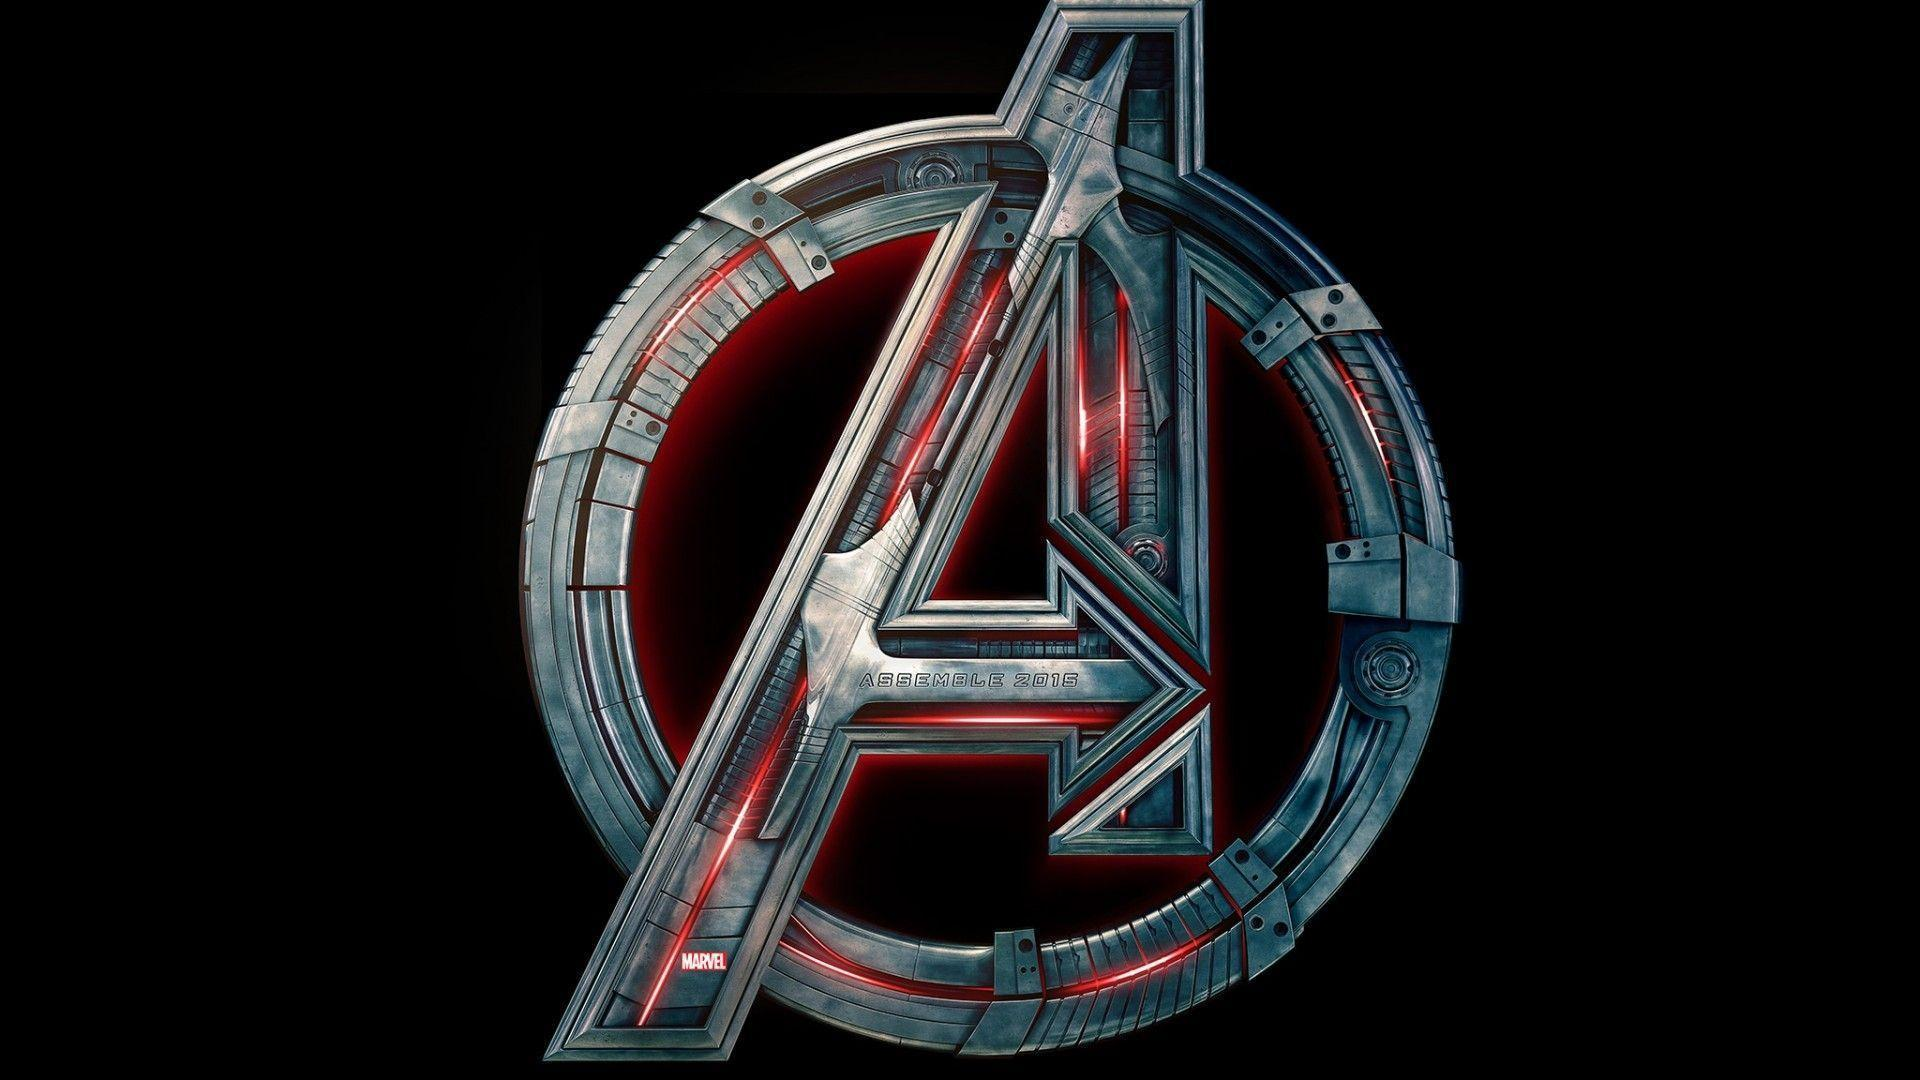 Download Avenger Logo Wallpaper Hd Backgrounds Download